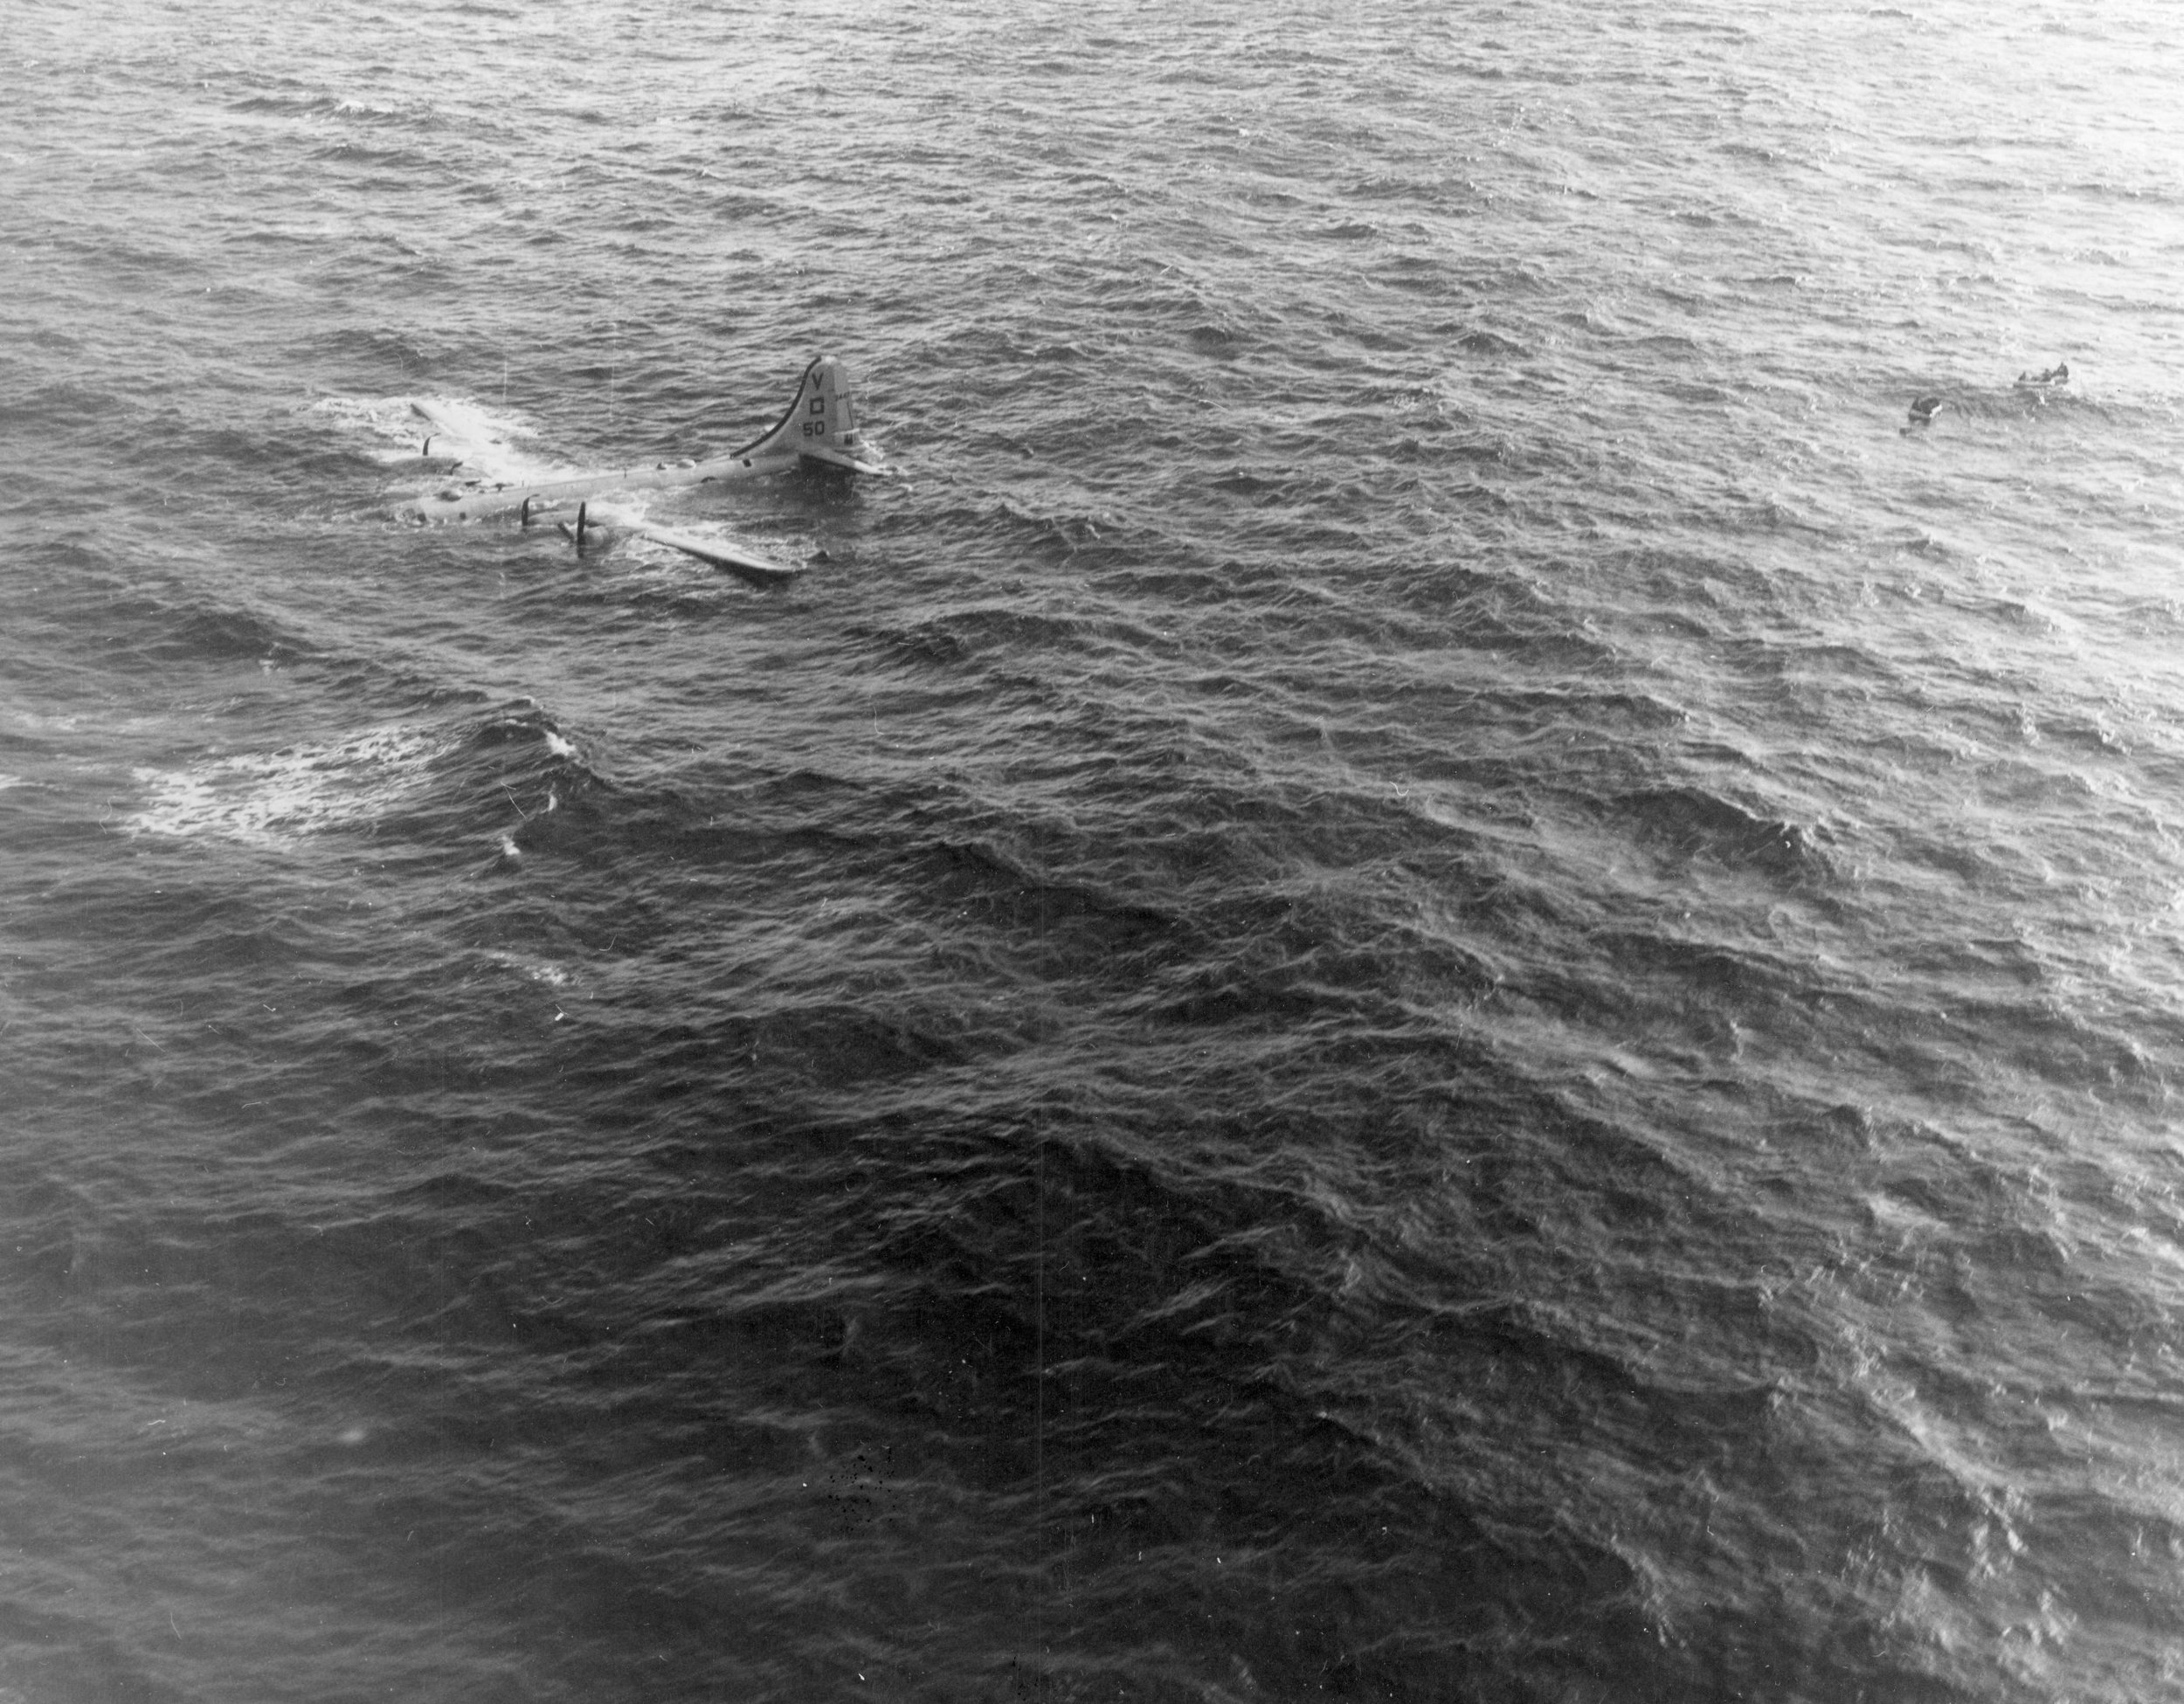 A B-29 settles into the ocean. The life rafts are to the right.. Crews often drifted for days if not weeks. Credit: Lost in the Pacific/National Archives